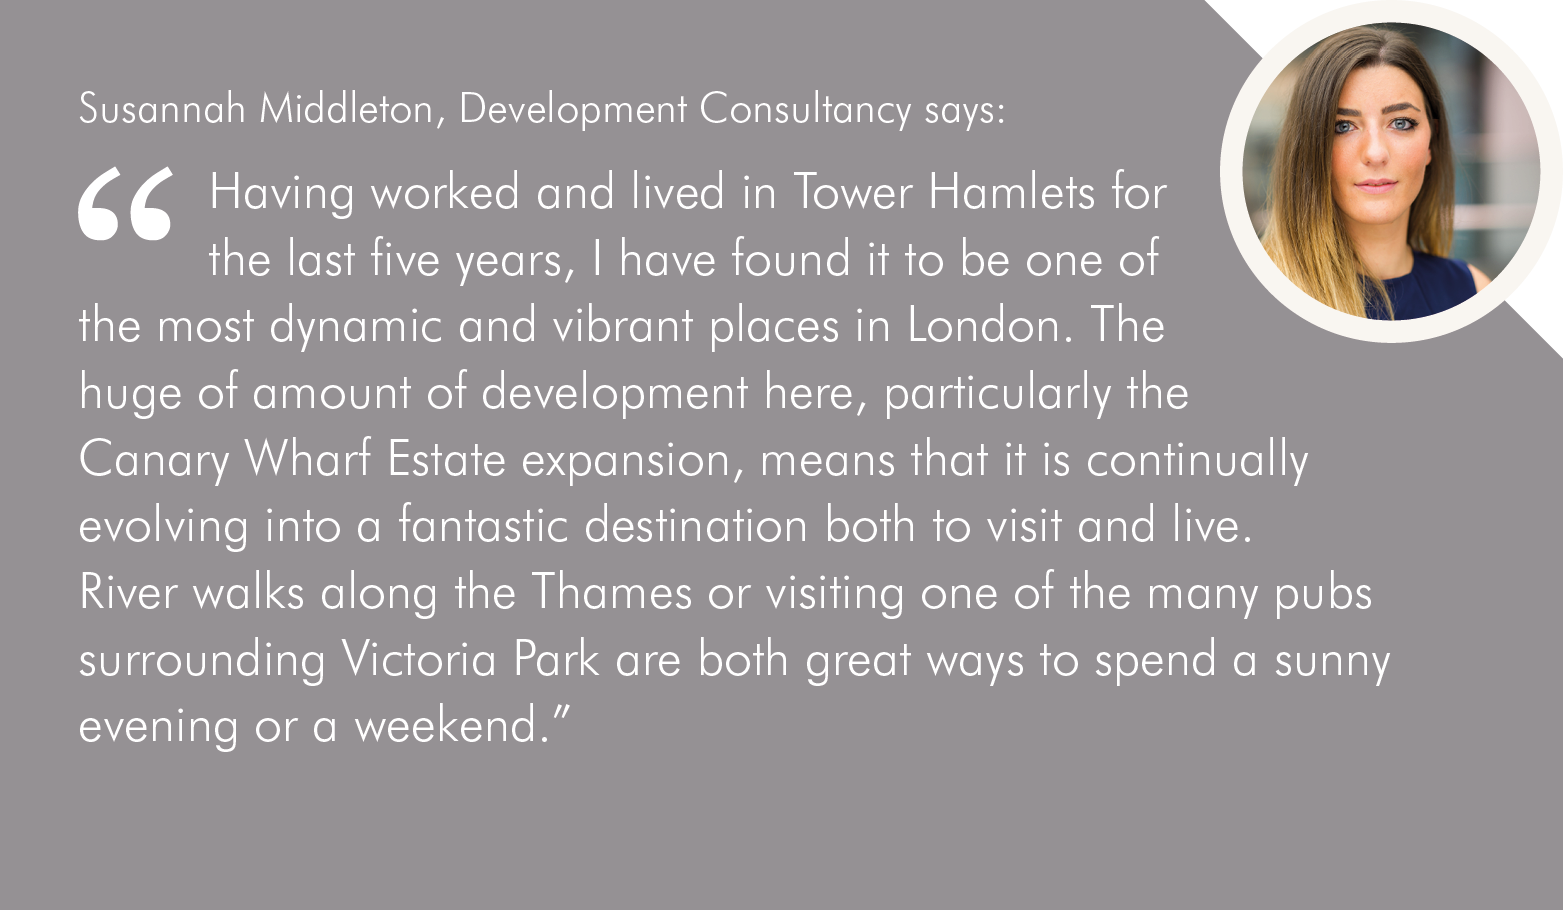 Tower Hamlets quote